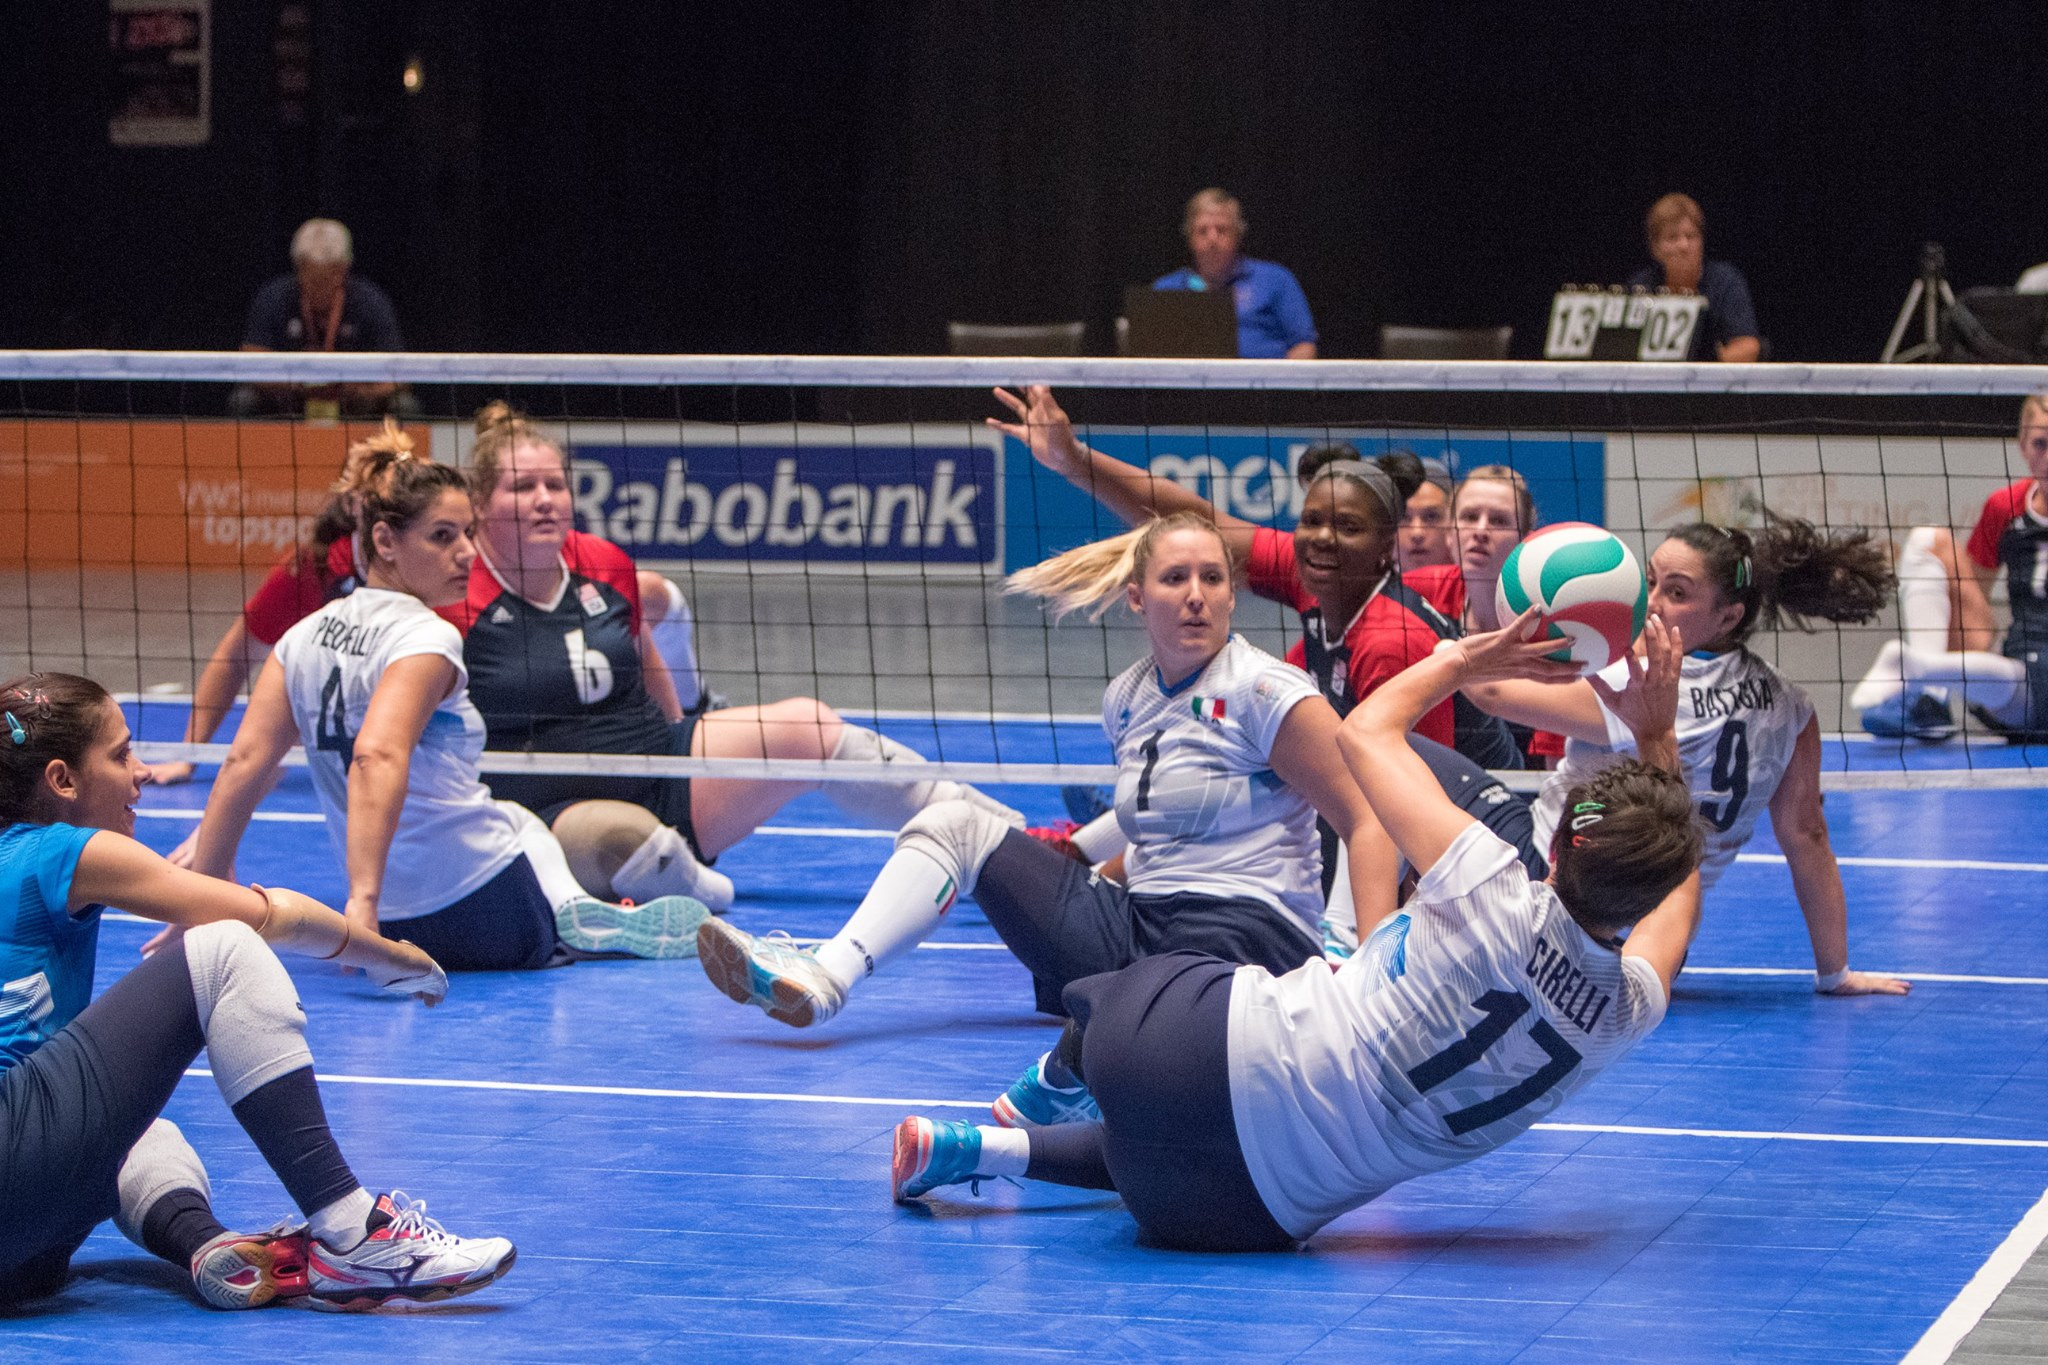 Una partita di Sitting Volley (fonte: Volleymania)